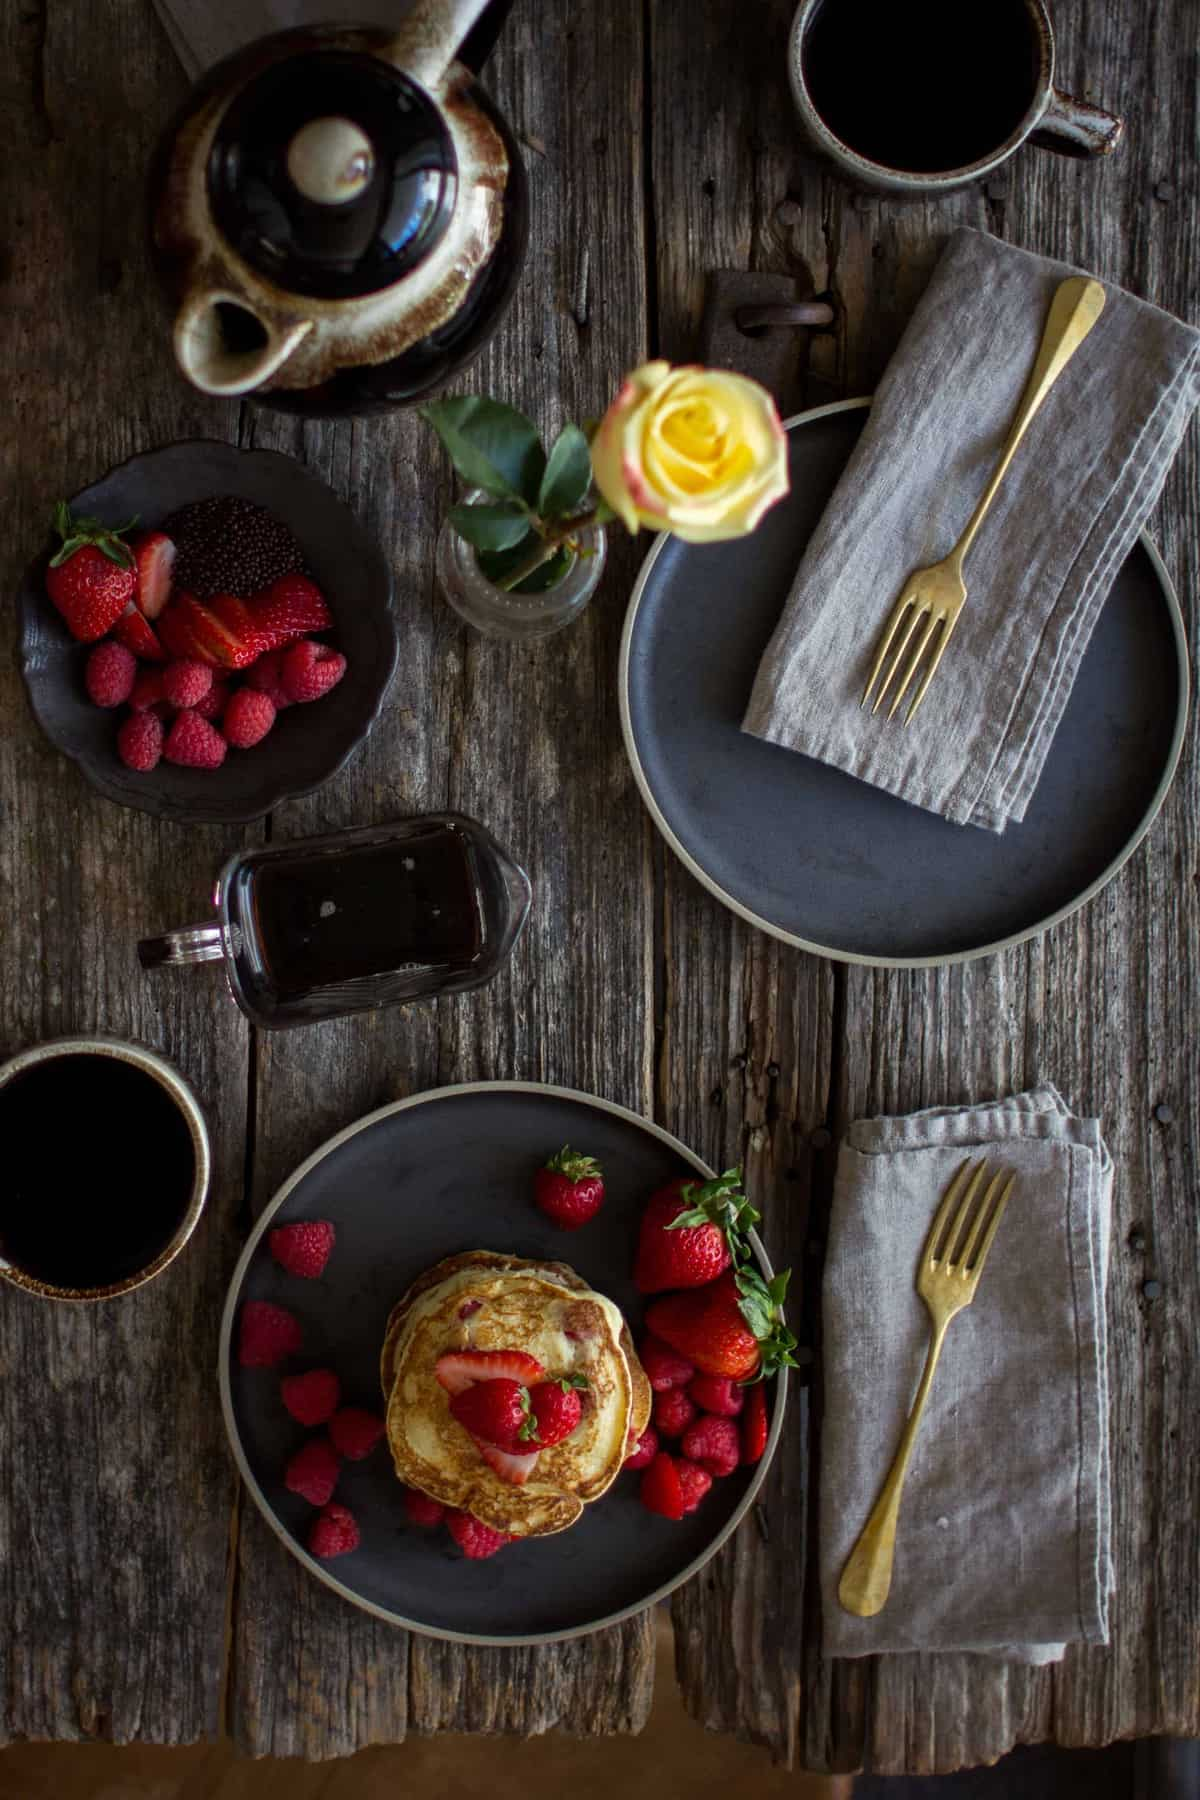 Mixed Berry Ricotta Pancakes by @beardandbonnet on www.thismessisours.com